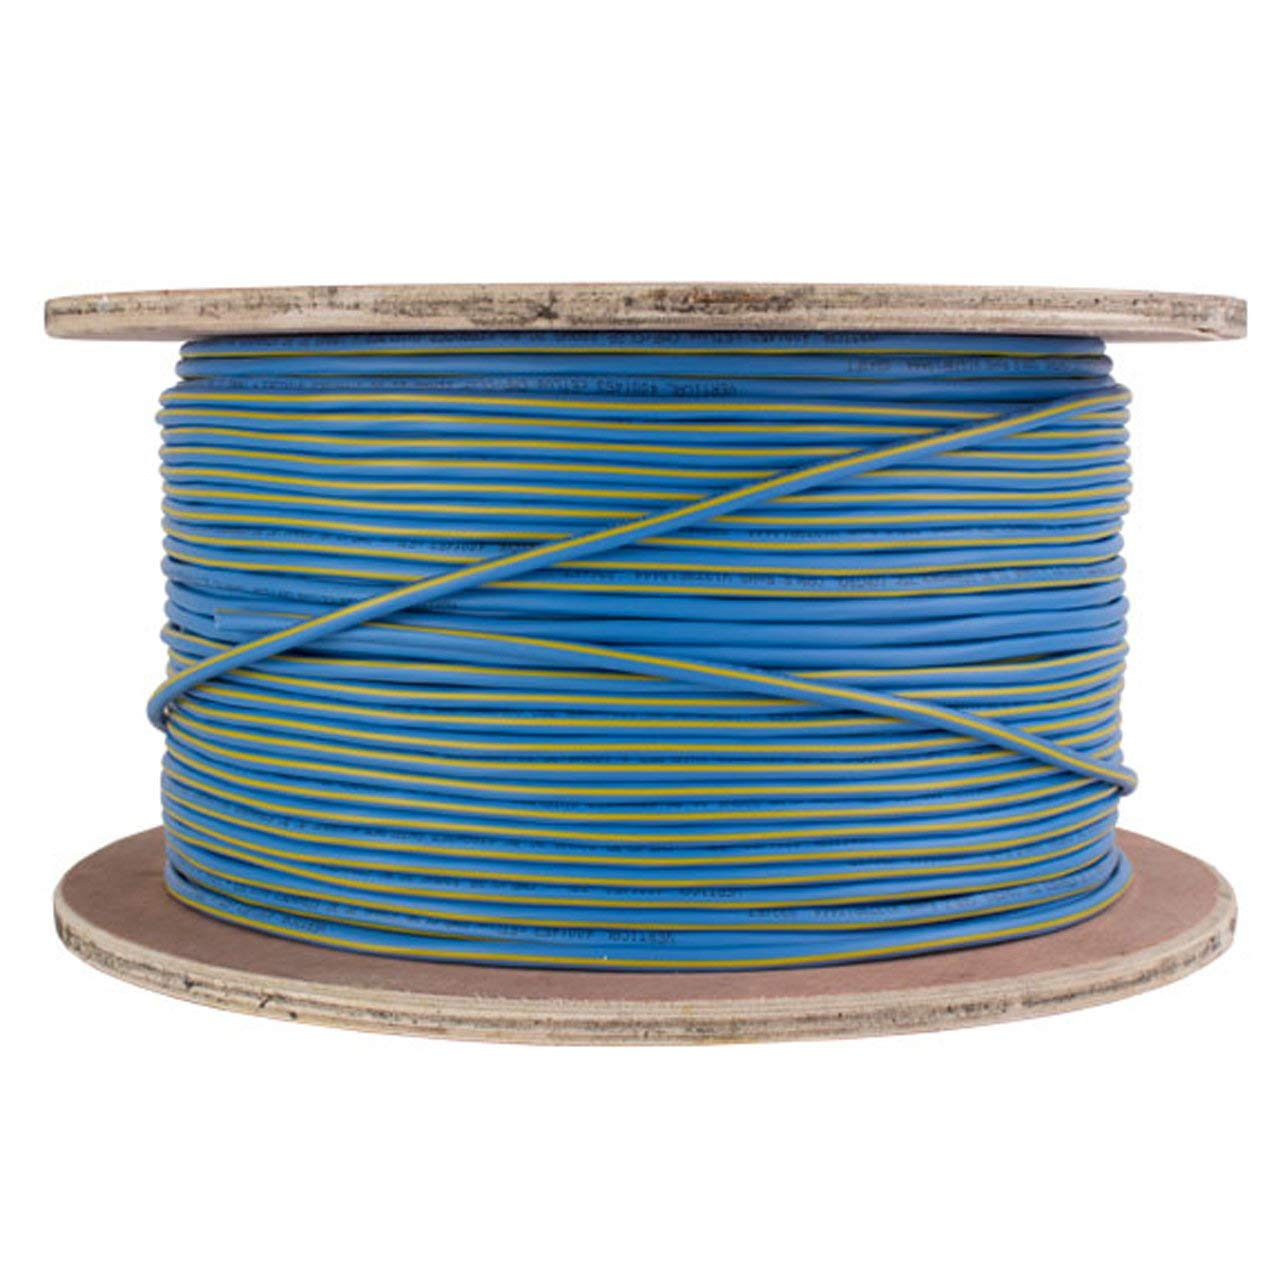 Control Cable Plenum: 22AWG/2 (Shielded) Data + 18AWG/2 Power, Stranded Bare Copper Conductors, Teal with Yellow Stripe, 1000ft